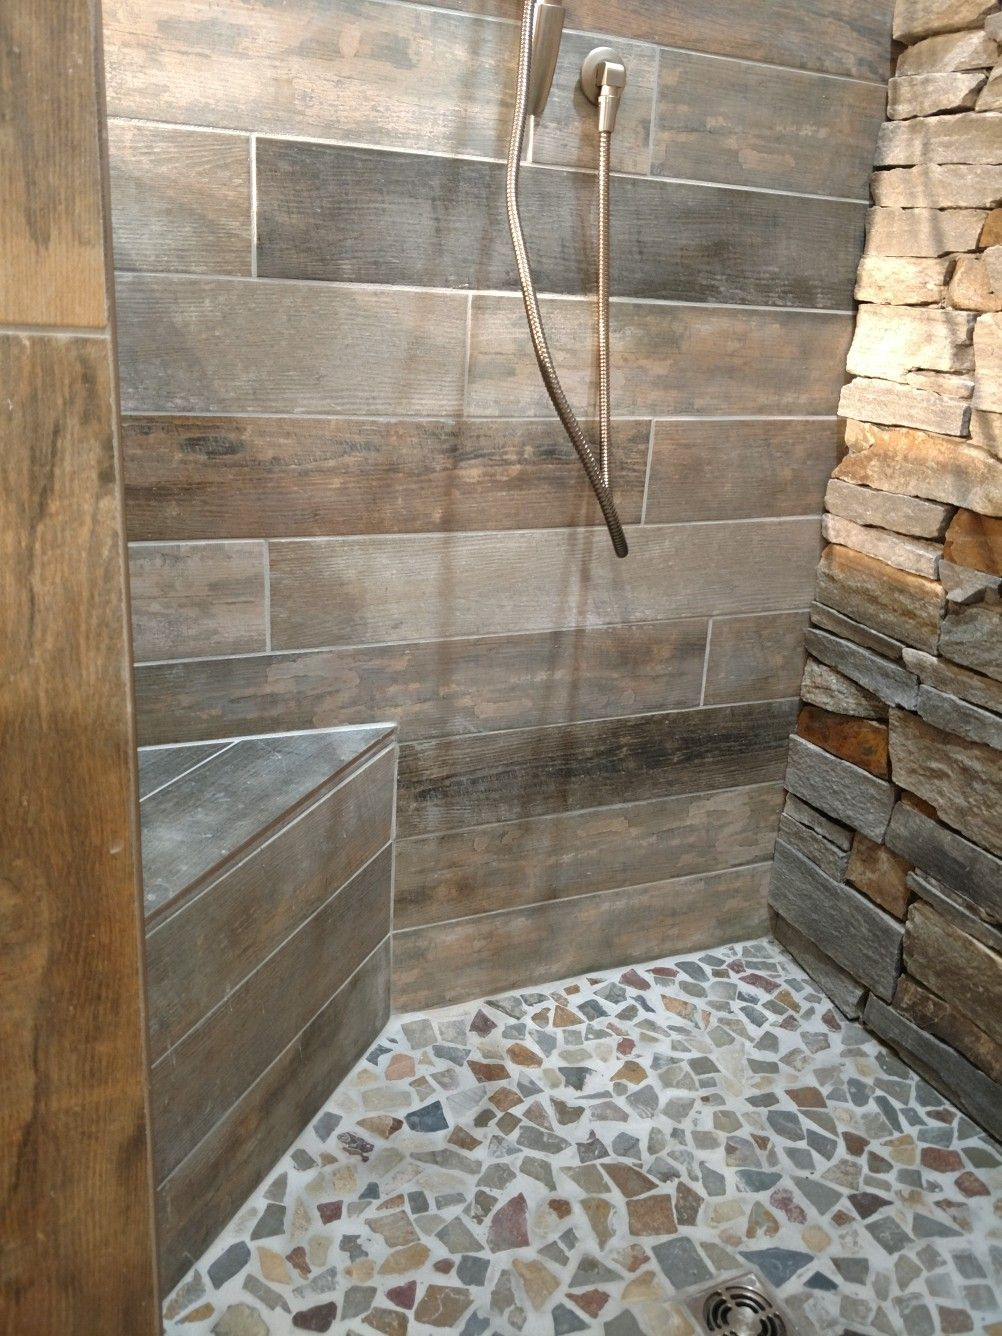 Corner Bench In Walk In Tile Shower Walkinshowerdesignswithbench In 2020 Master Bathroom Shower Tile Walk In Shower Rustic Bathroom Shower